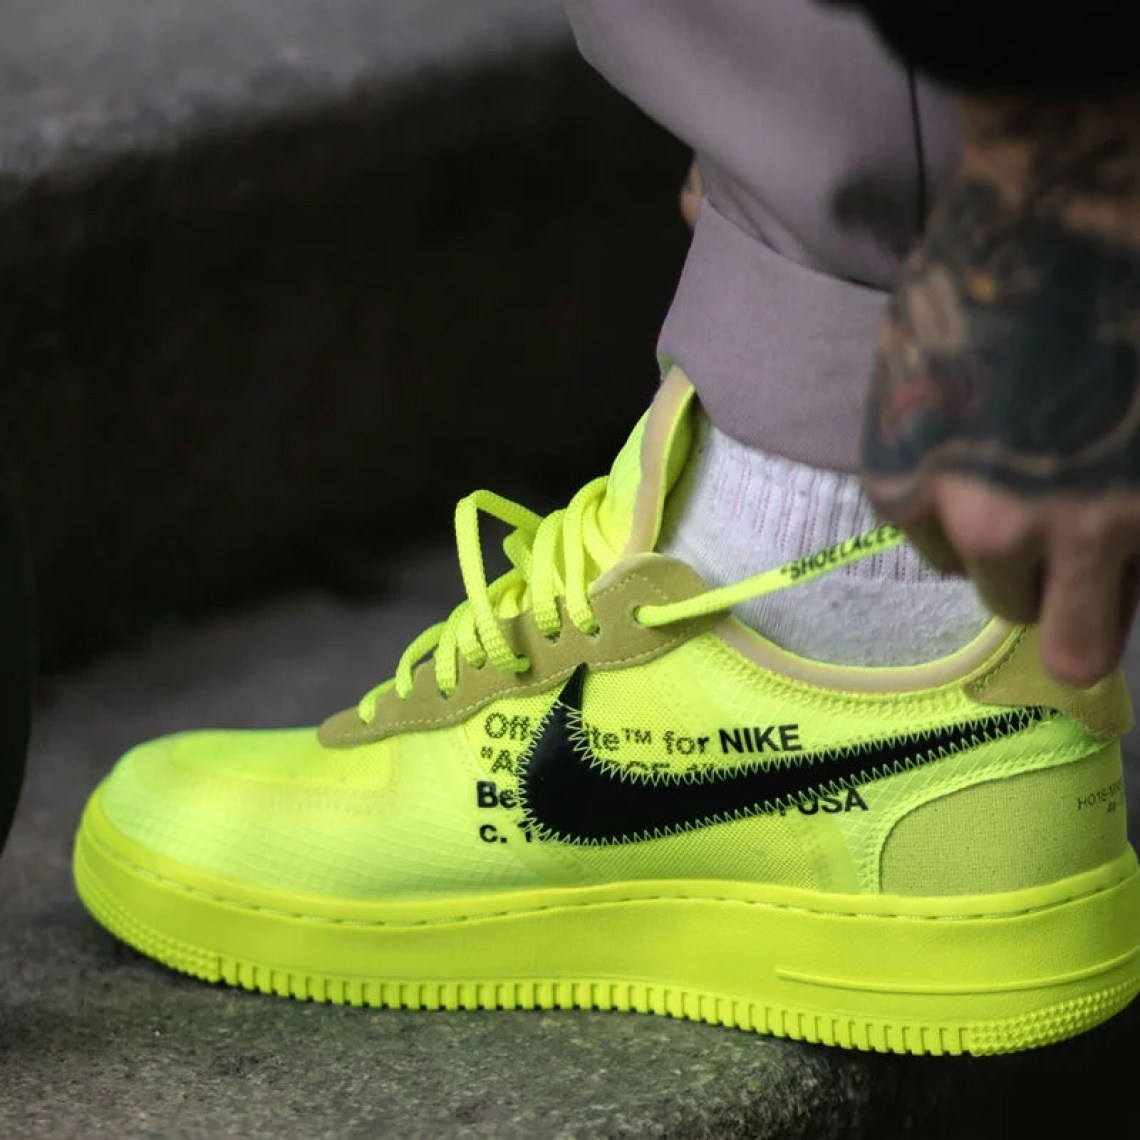 8c1b4905aaab Can Virgil Bring Volt Back With Off White x Nike Air Force 1